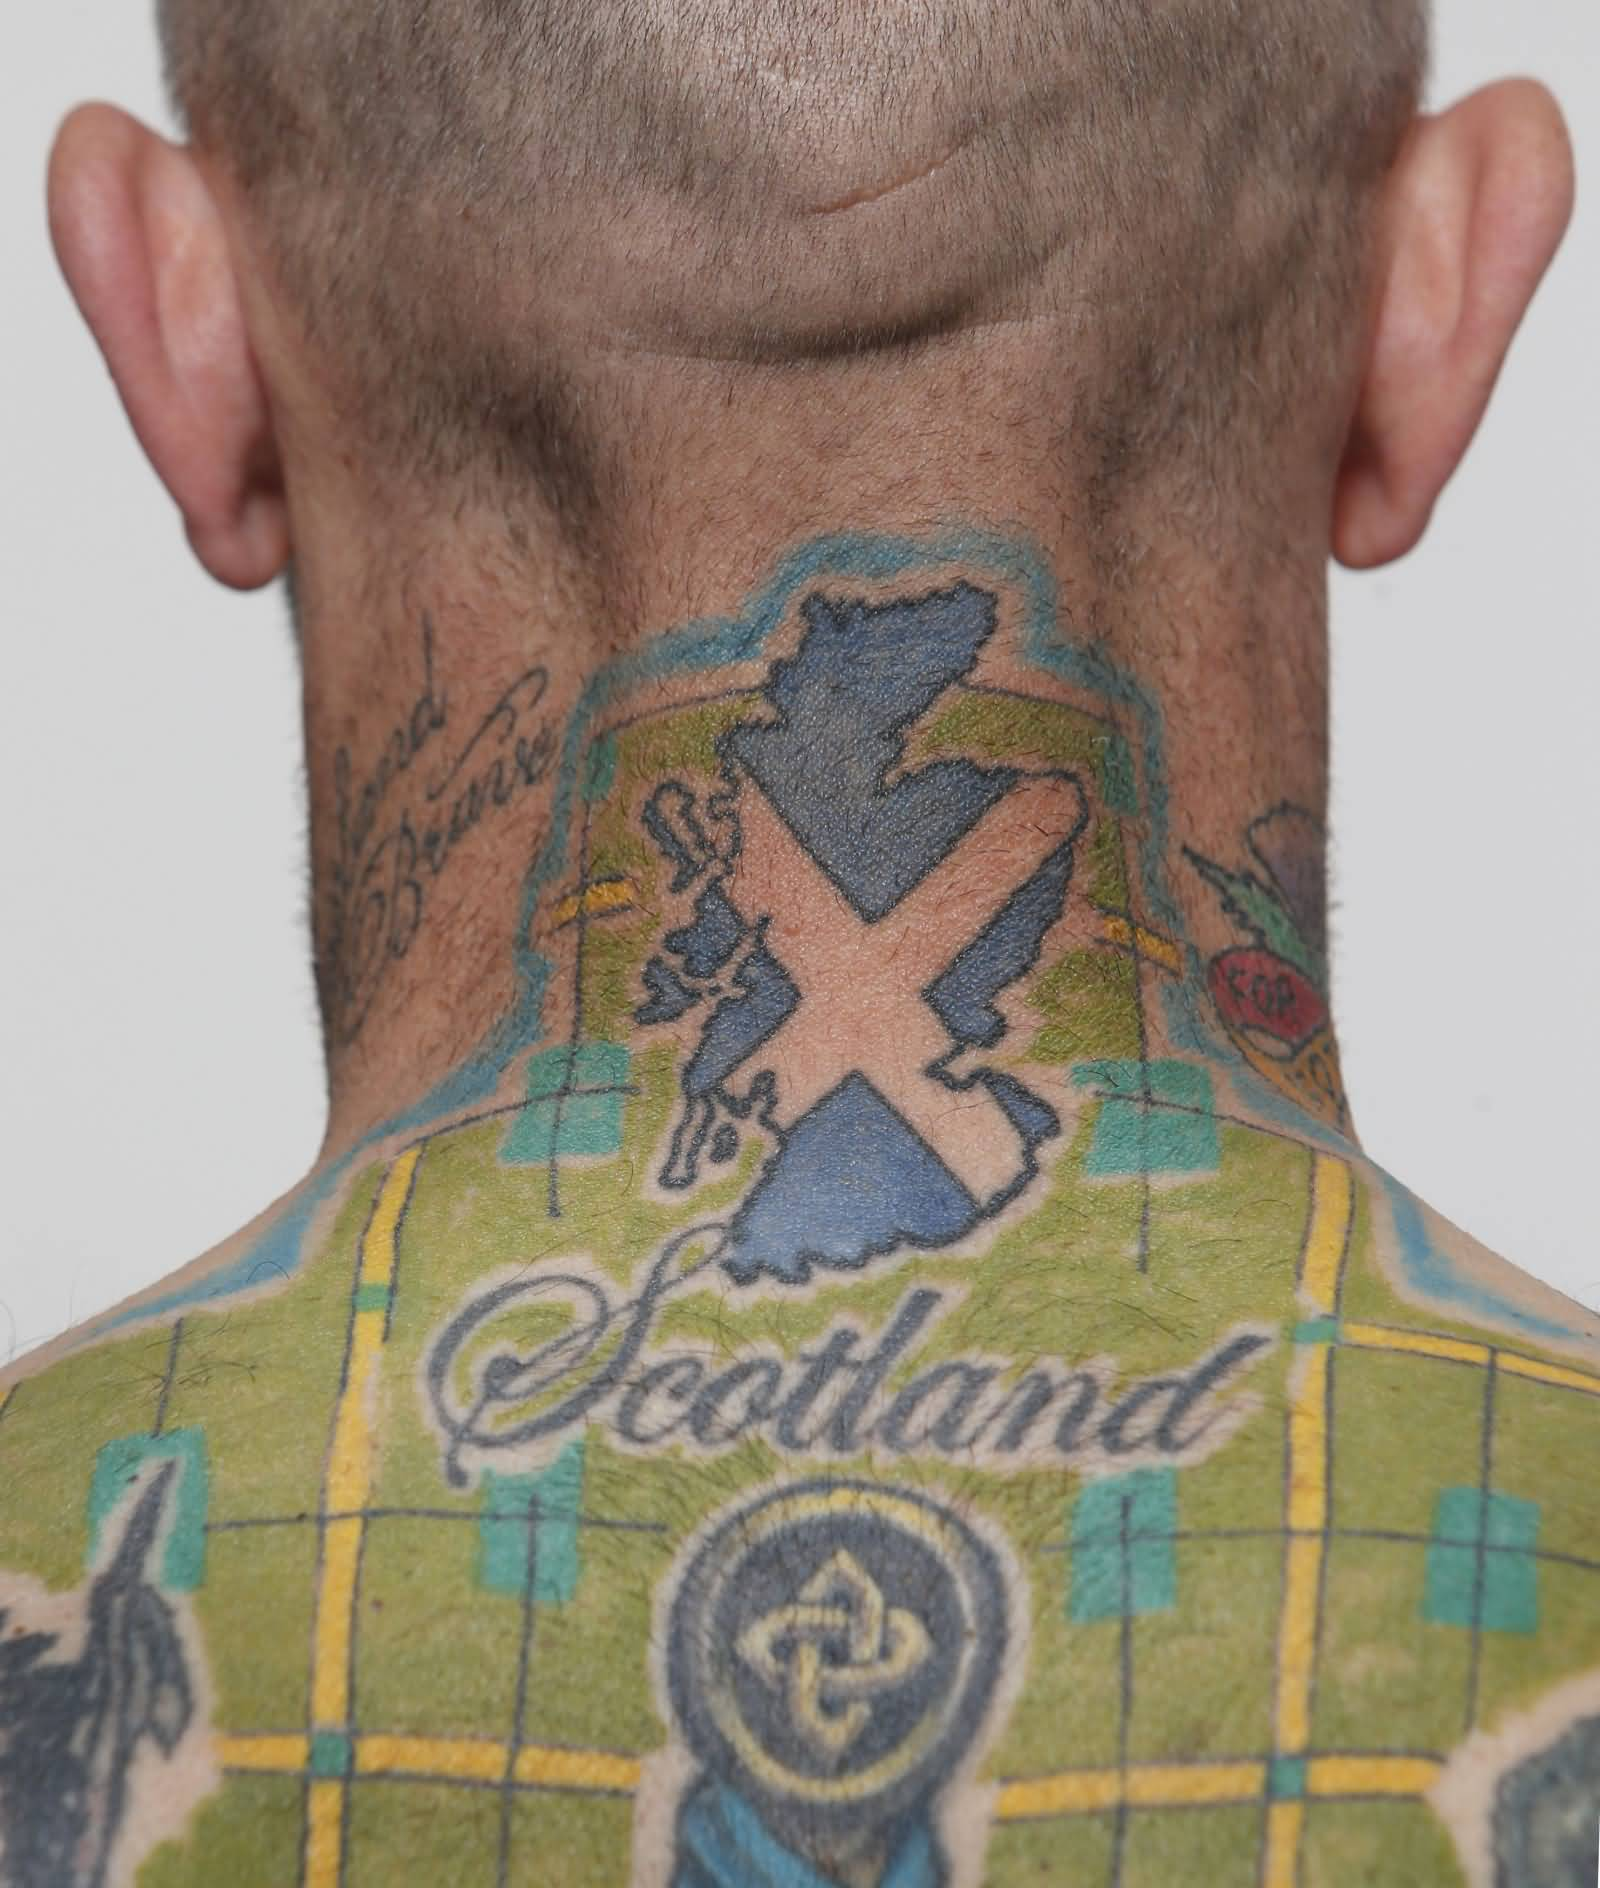 23 Scottish Tattoo Designs Ideas: 65+ Awesome Scottish Tattoos And Ideas